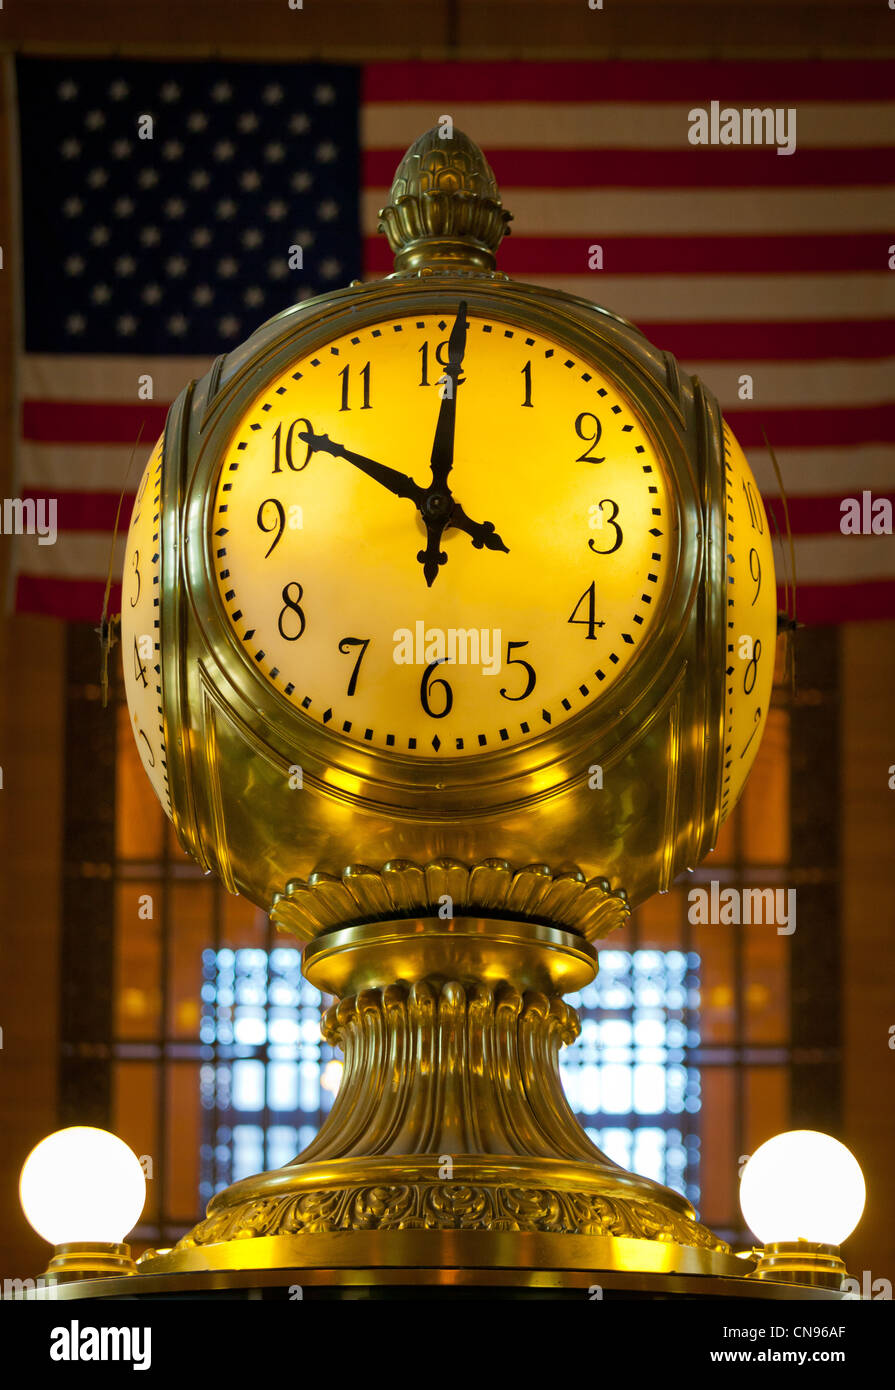 Clock and flag in the Main Concourse of New York City's Grand Central Terminal - Stock Image